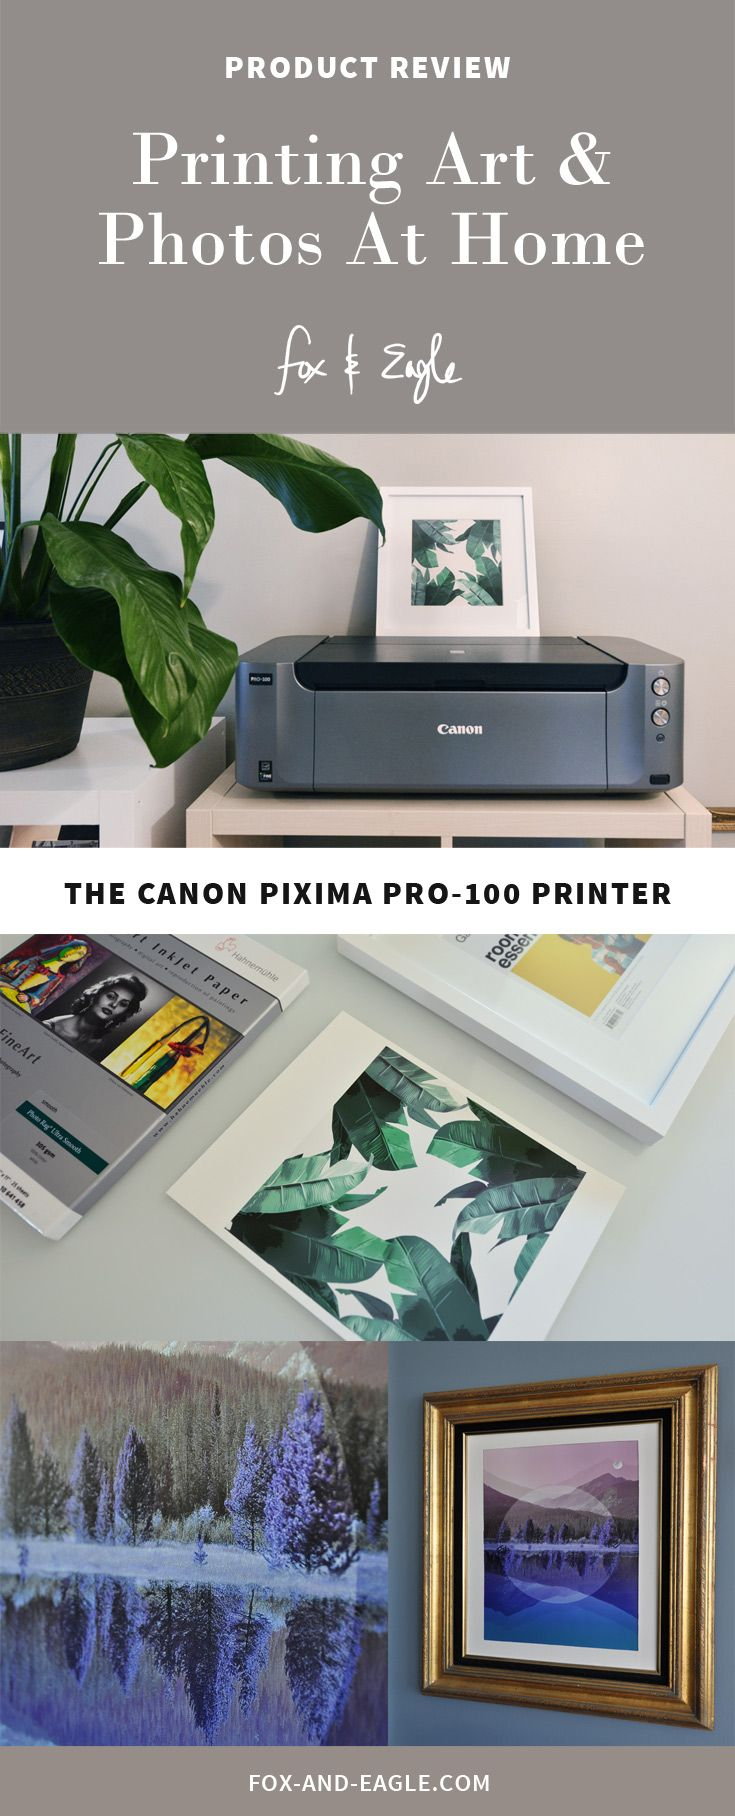 Canon Pro 100 For Printing Art Photography At Home Fox And Eagle Prints Art Photography Photography